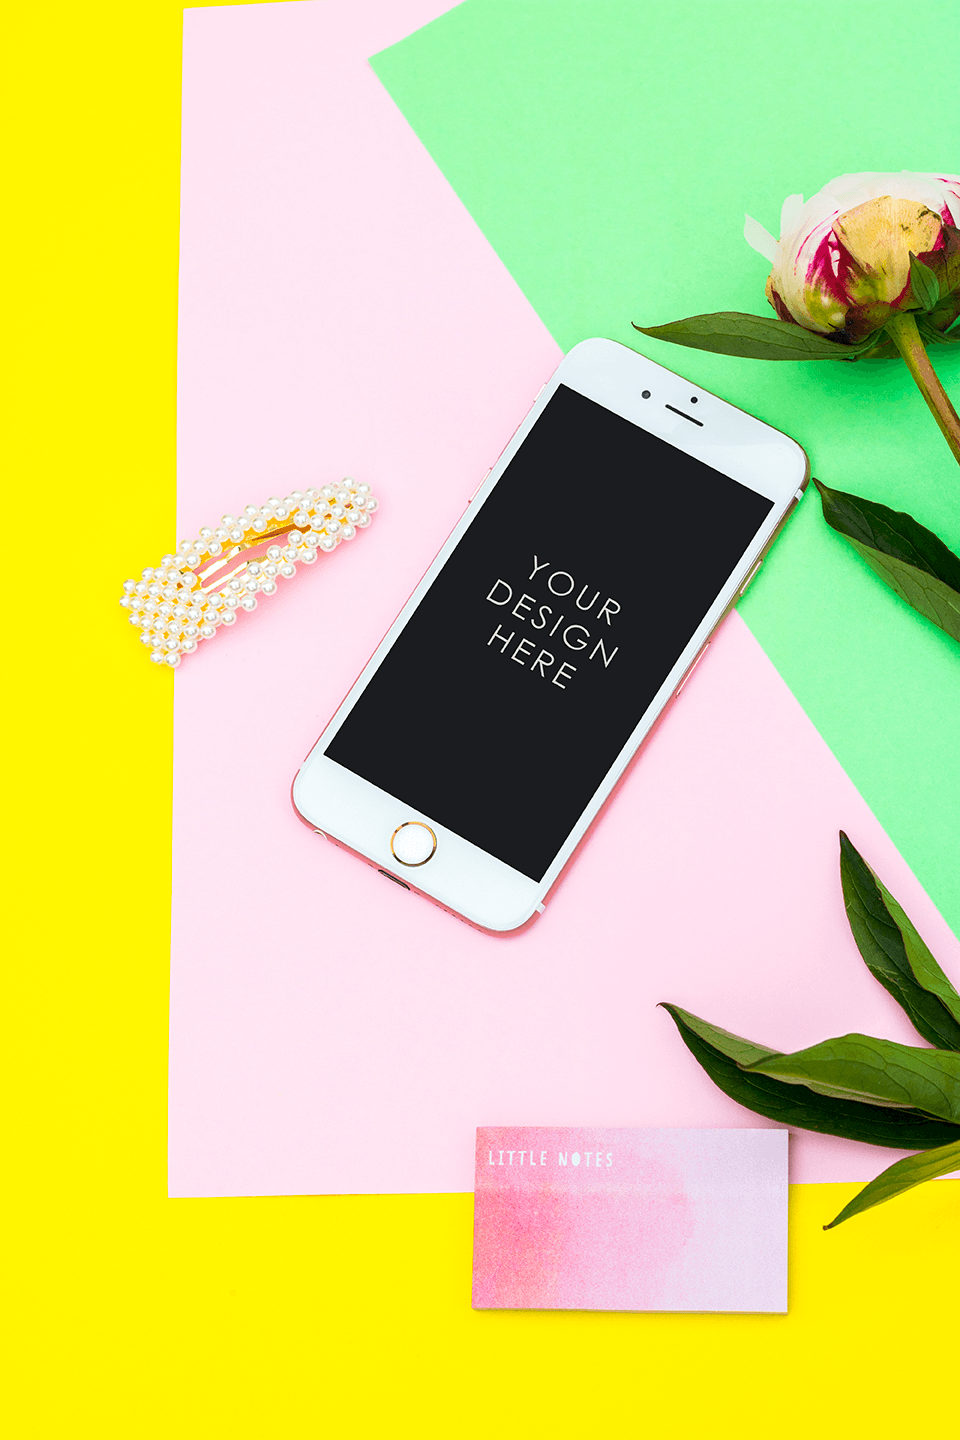 Colourful Yellow Pink & Green IPHONE Mockup Desk | blogging education - Grand & Lovely Stock styled photography desktops lifestyle screens desktops stationary